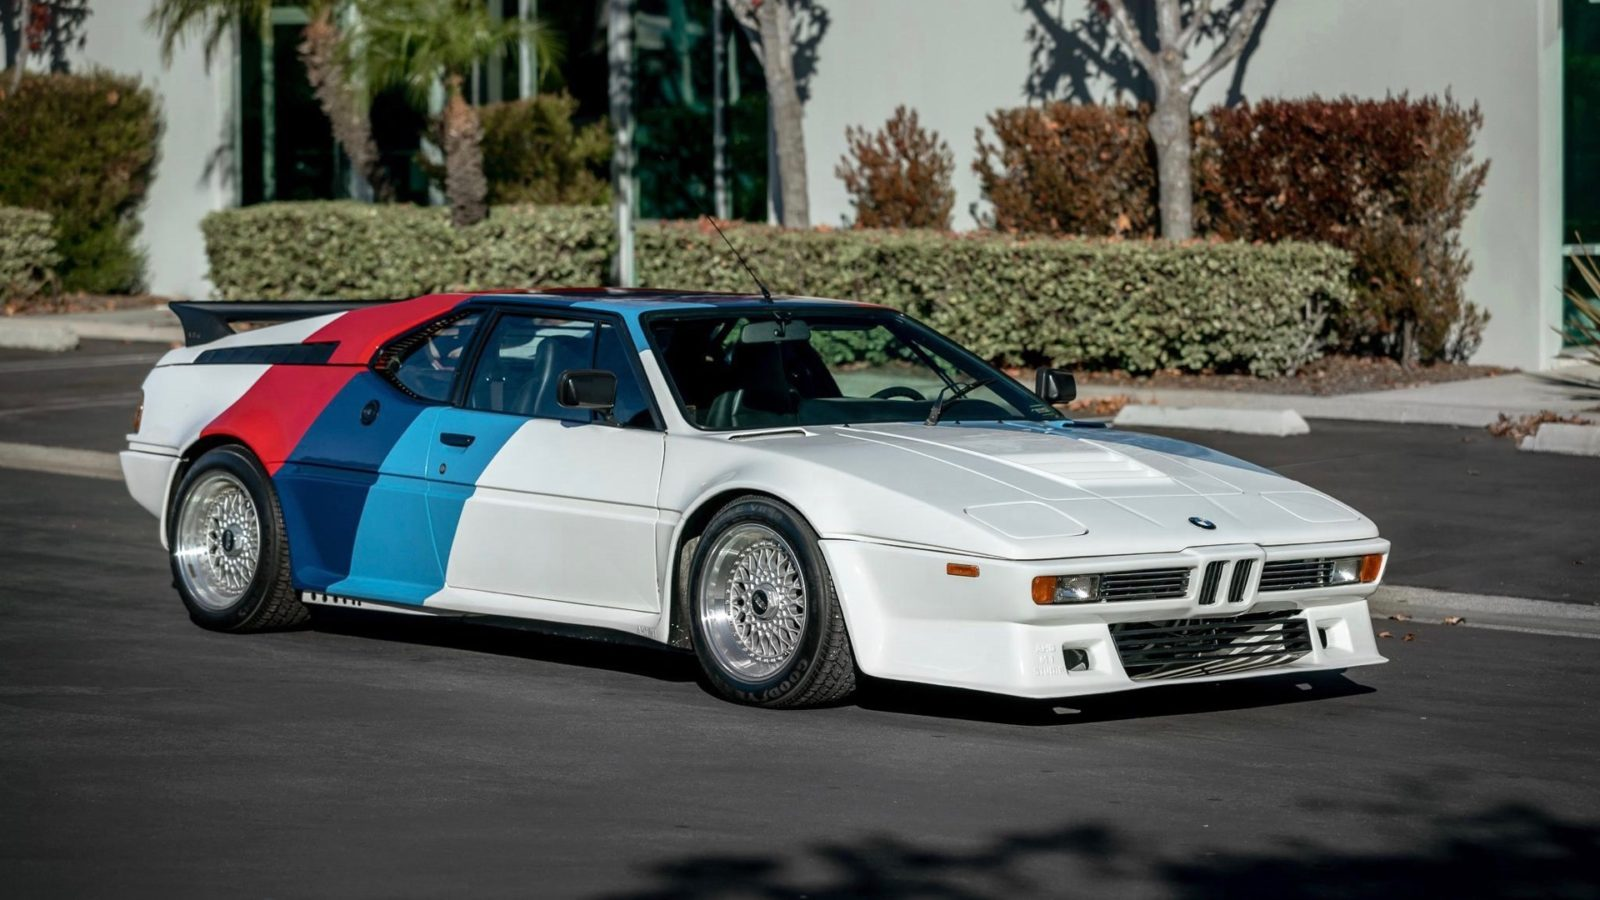 bmw-m1-once-owned-by-paul-walker-sells-for-$500,000